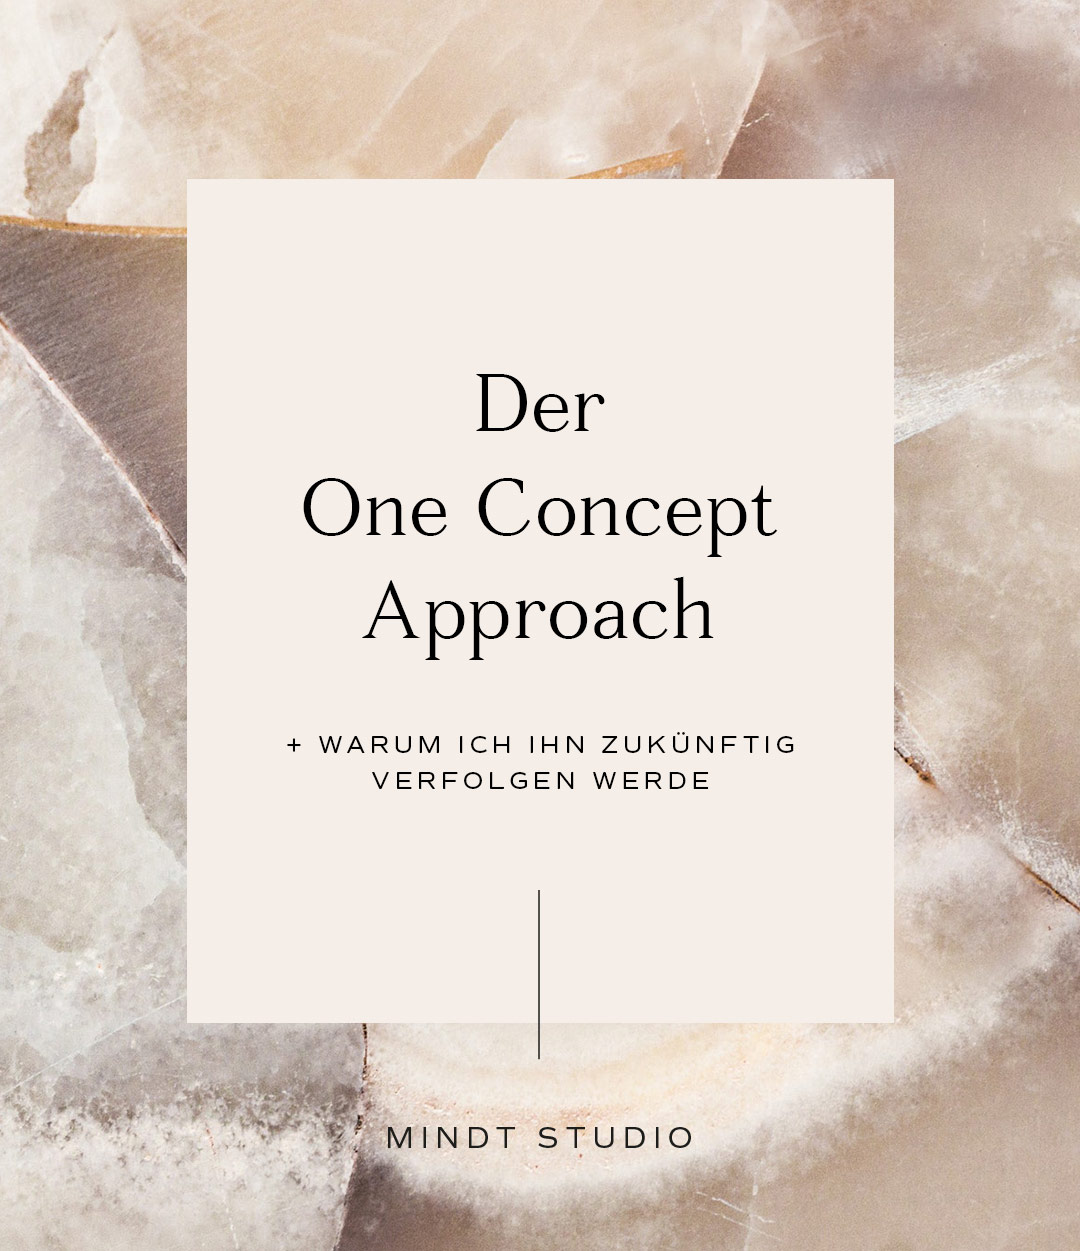 Der One Concept Approach